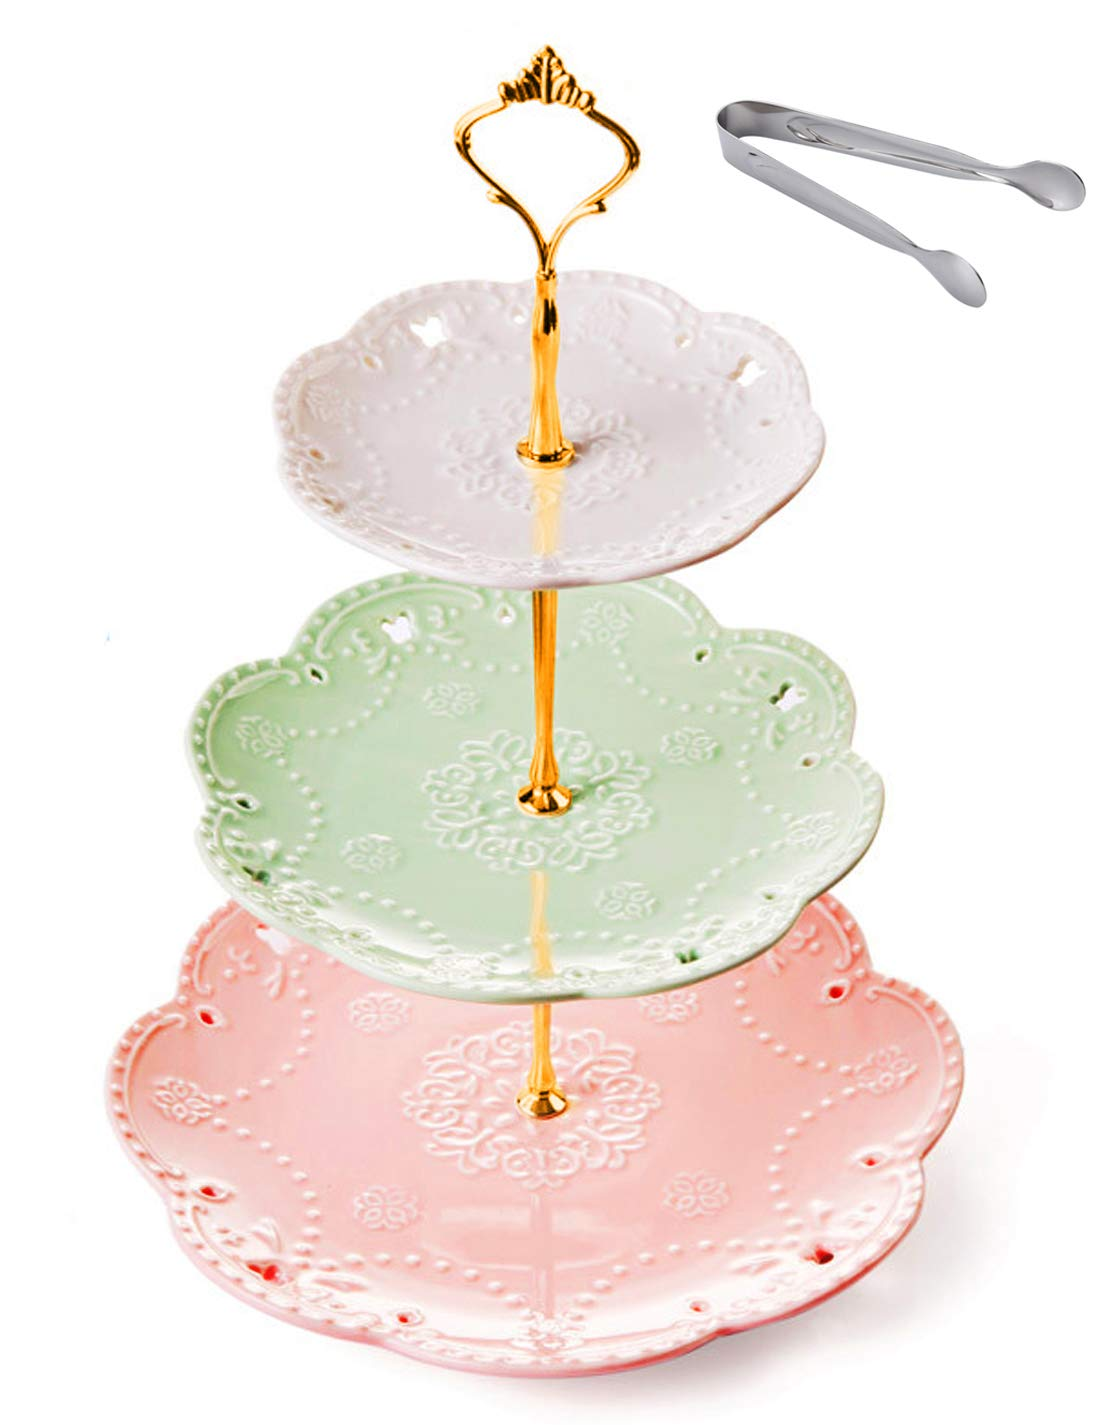 Jusalpha 3-tier Ceramic Cake Stand-Dessert Stand-Cupcake Stand-Tea Party Serving Platter (Gold) NA